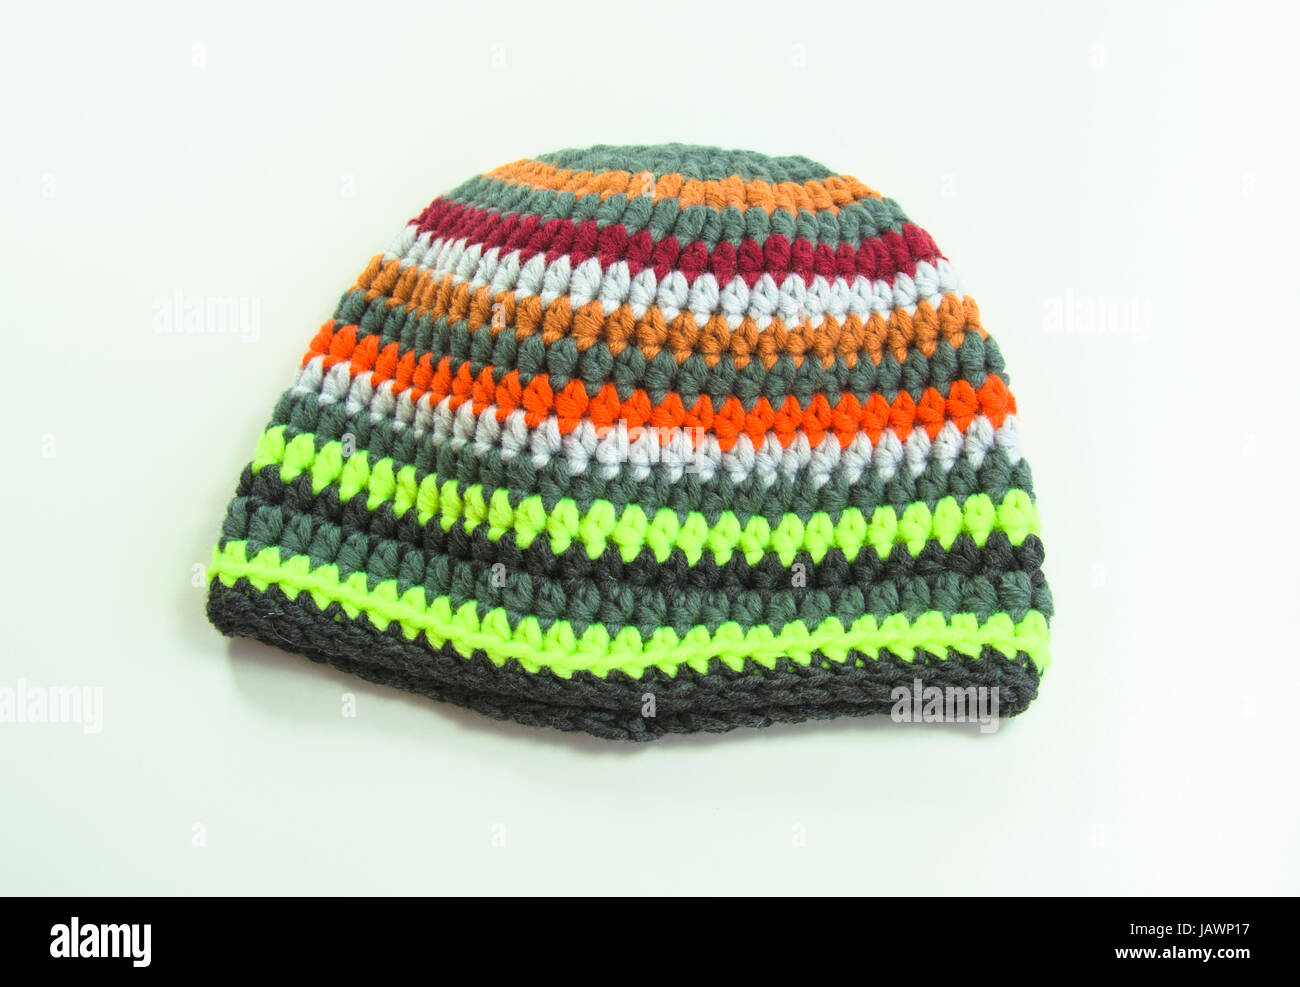 38573075 colourful,crocheted winter hat Stock Photo: 144395587 - Alamy